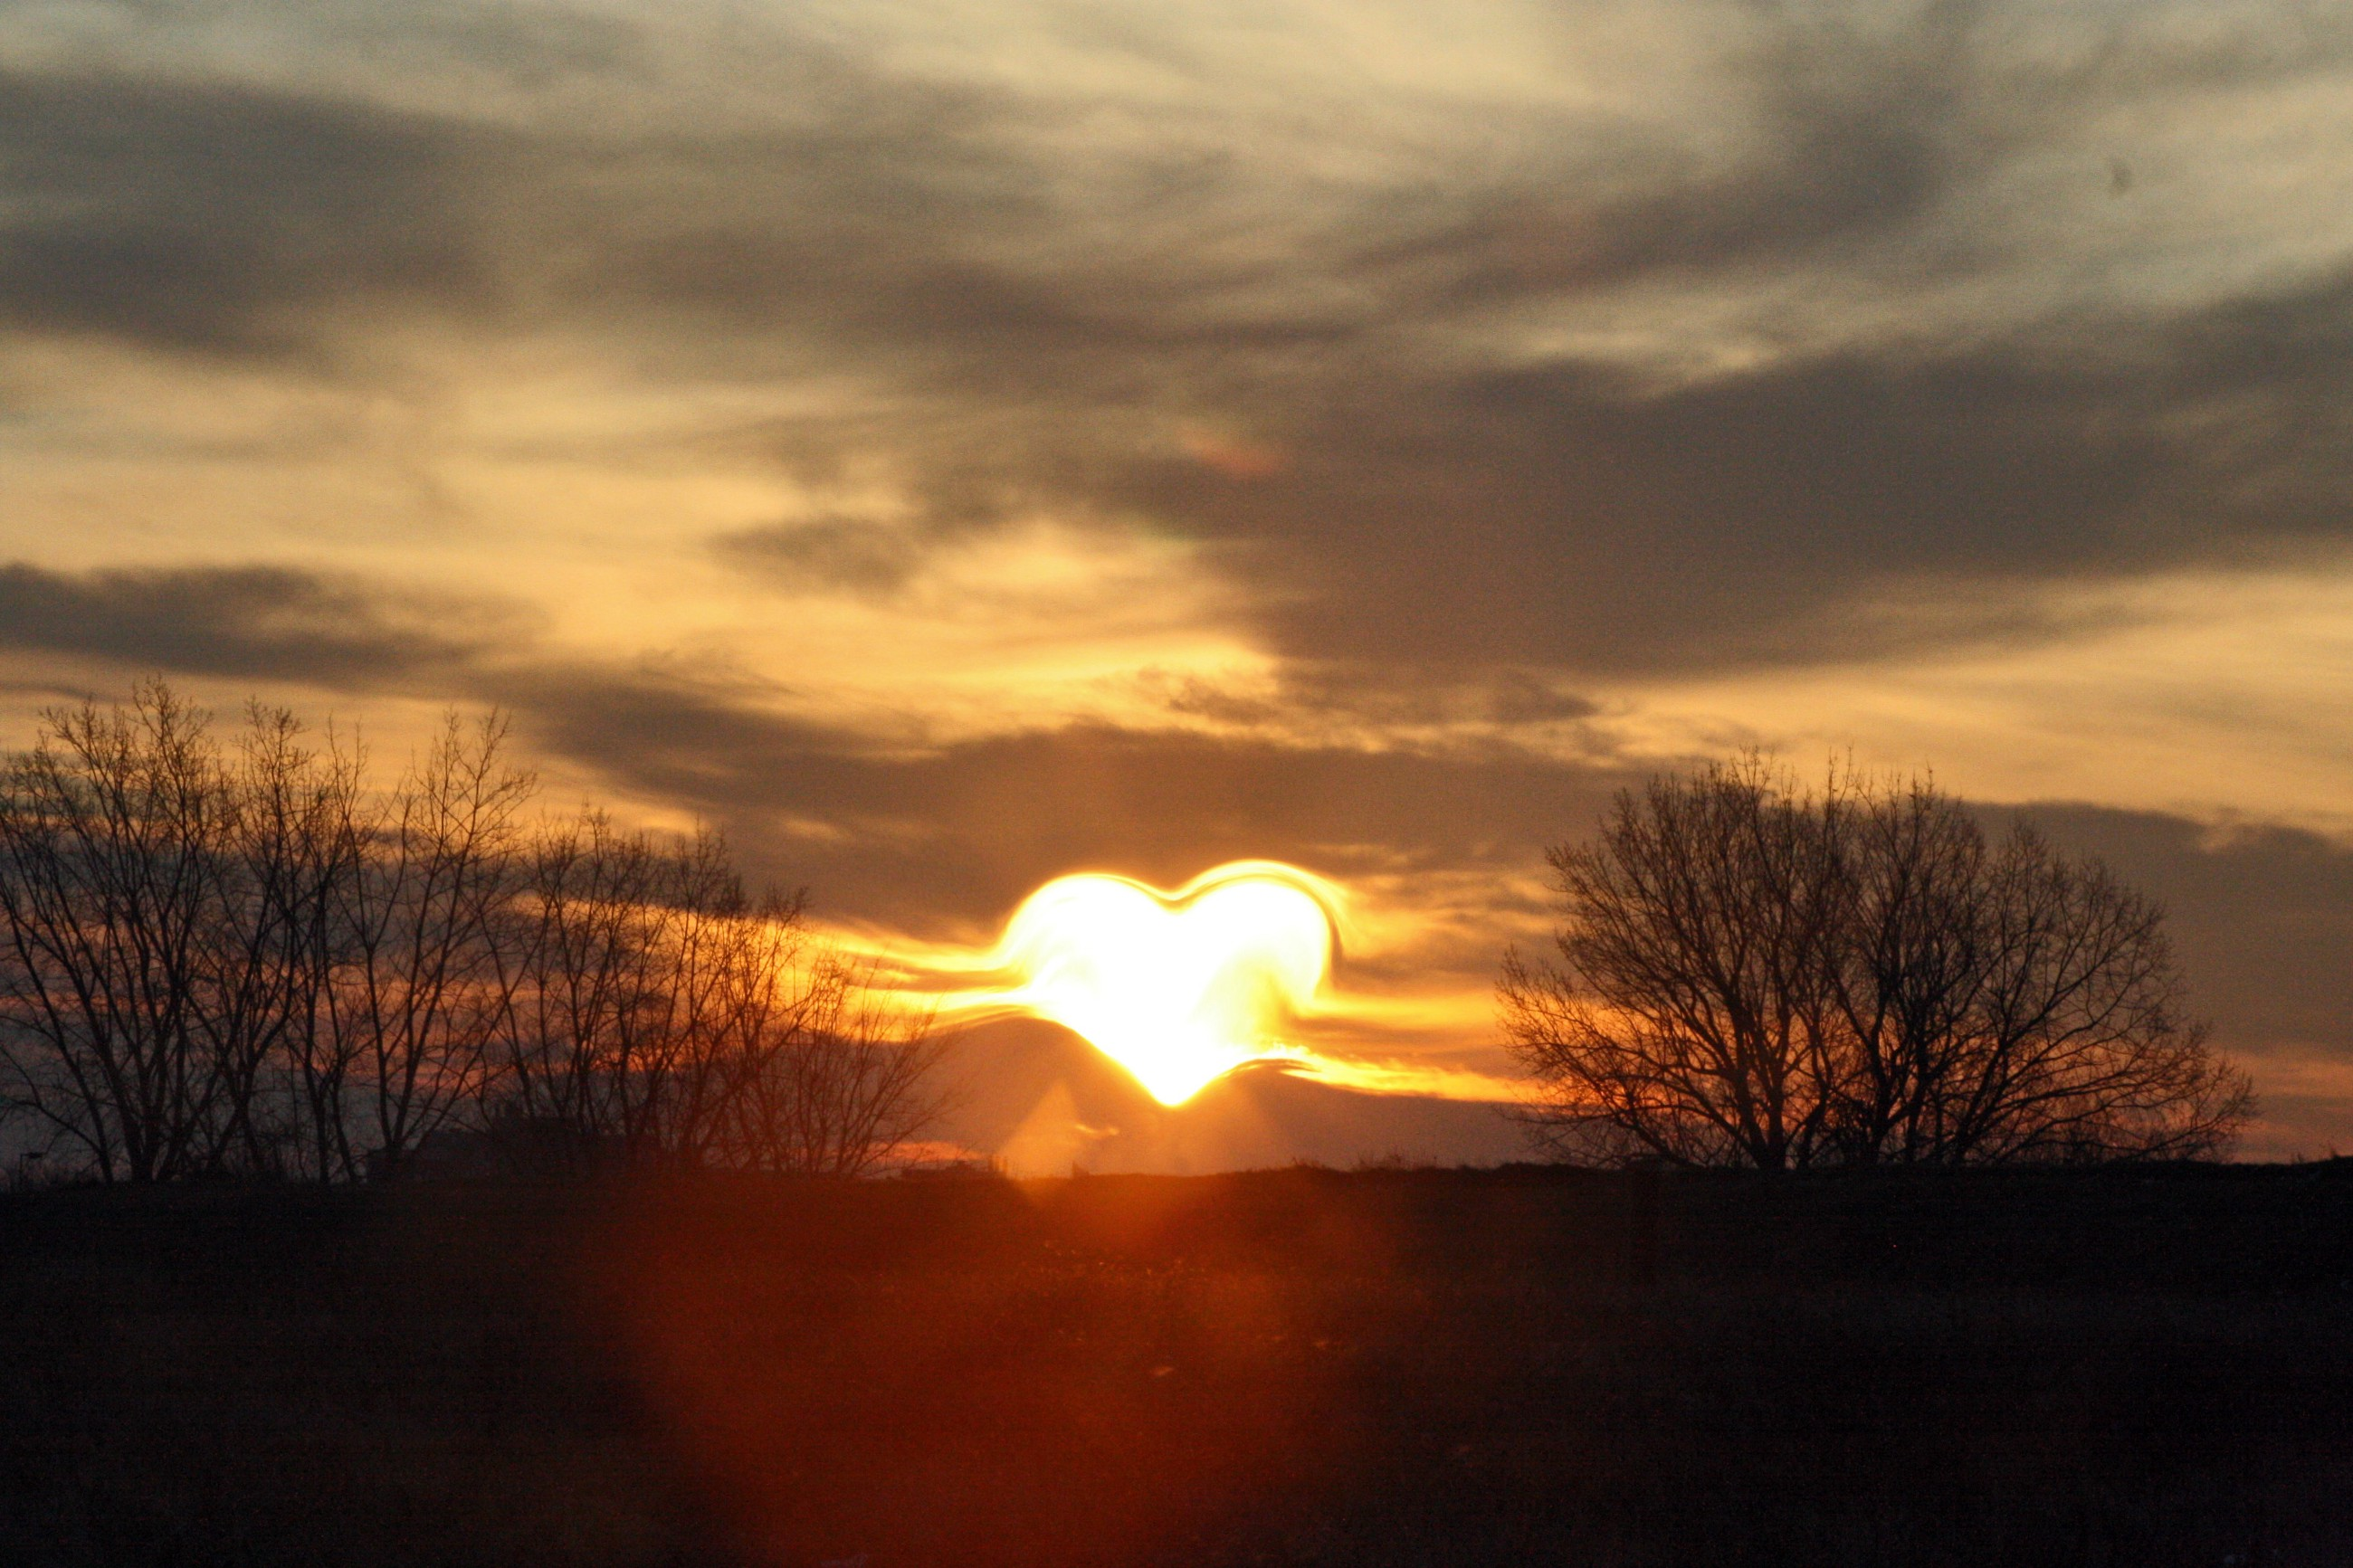 Celestial Alignment & the Power of Love